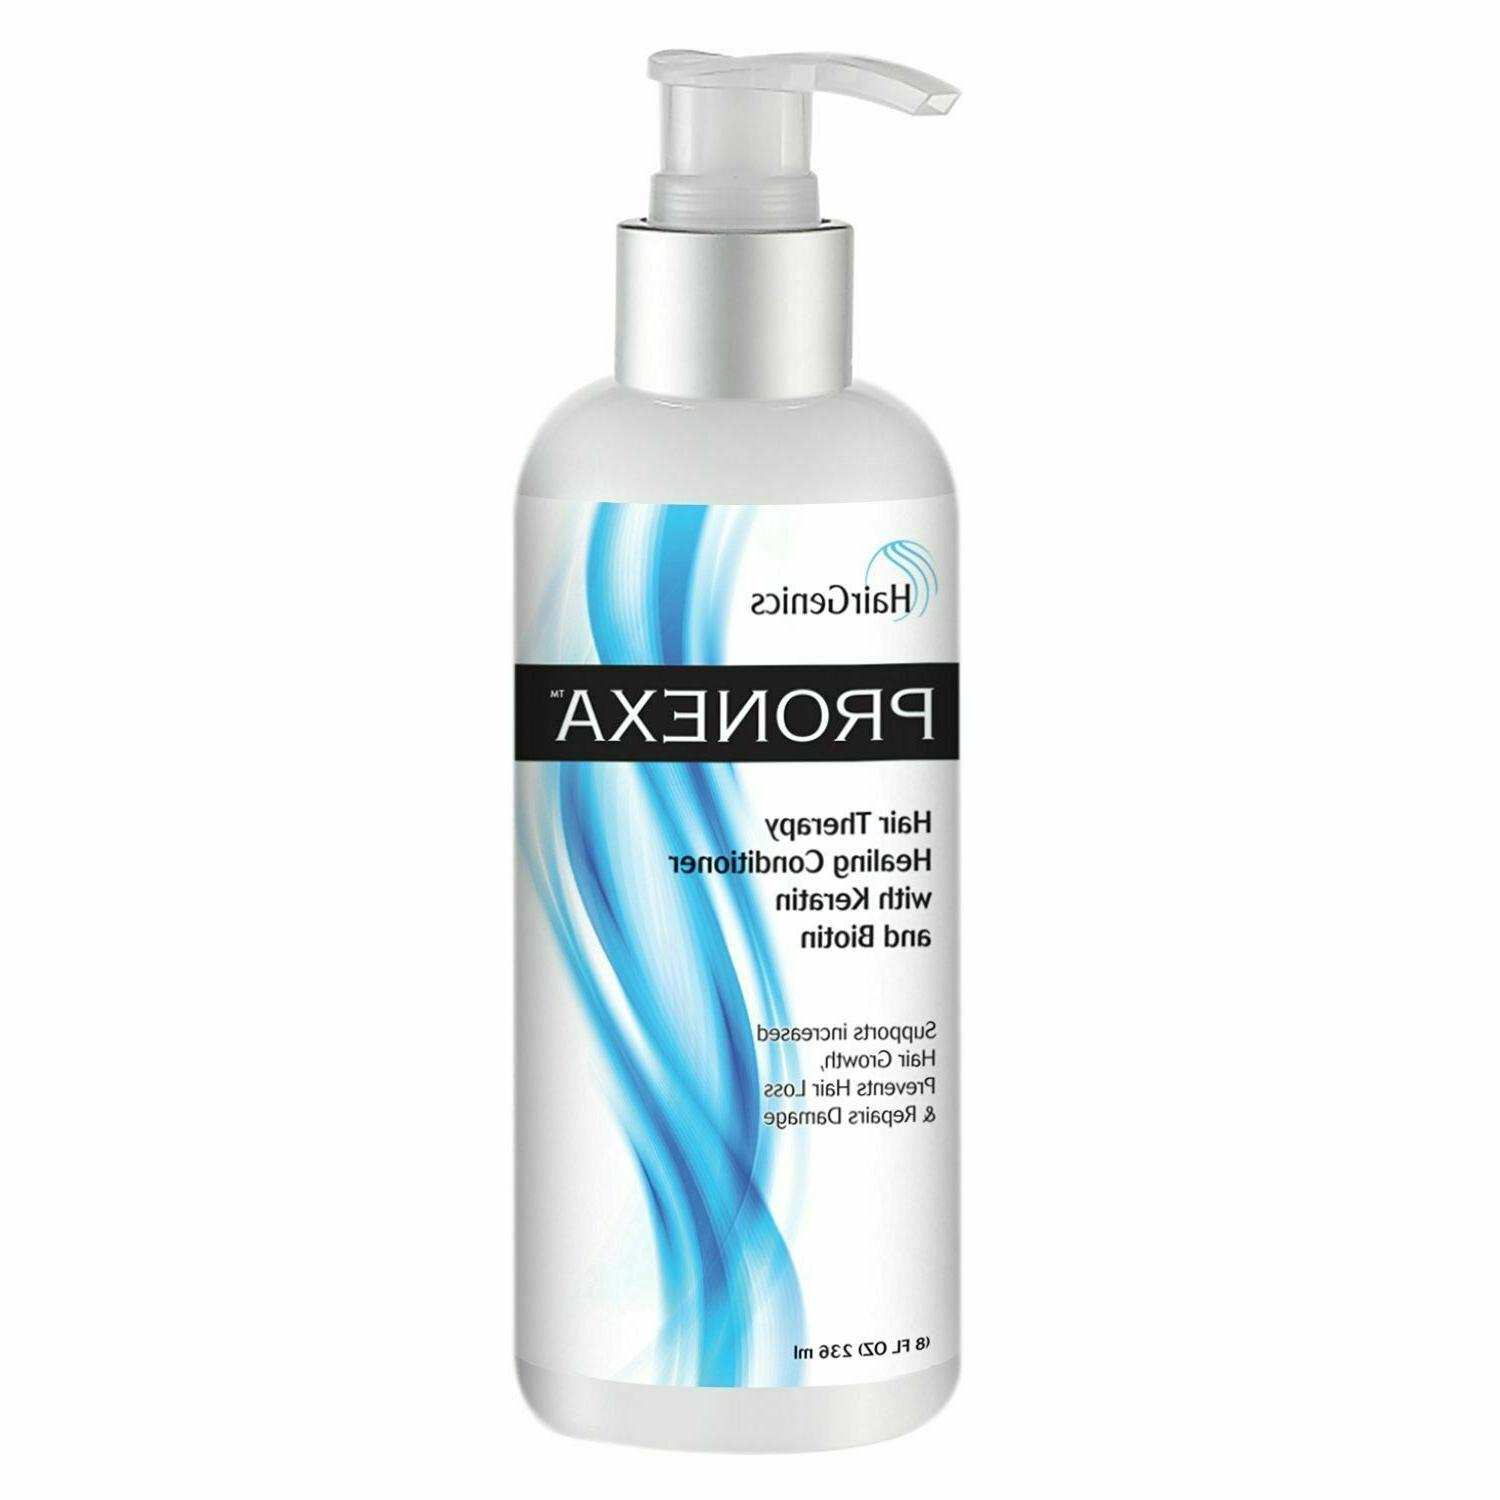 pronexa hair loss therapy conditioner with biotin